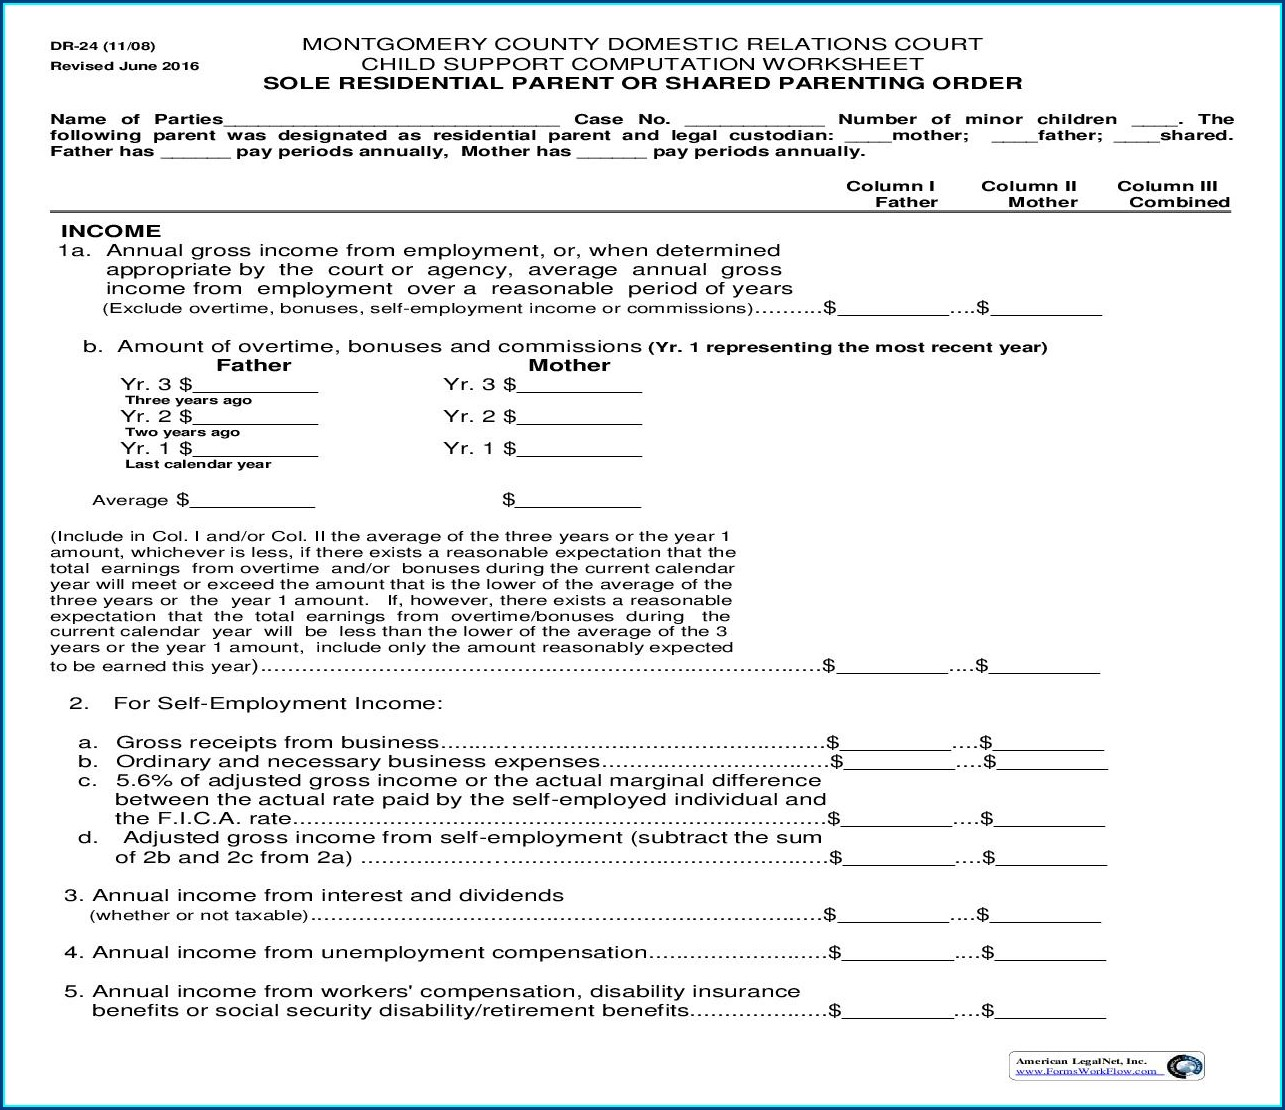 Child Support Computation Worksheet